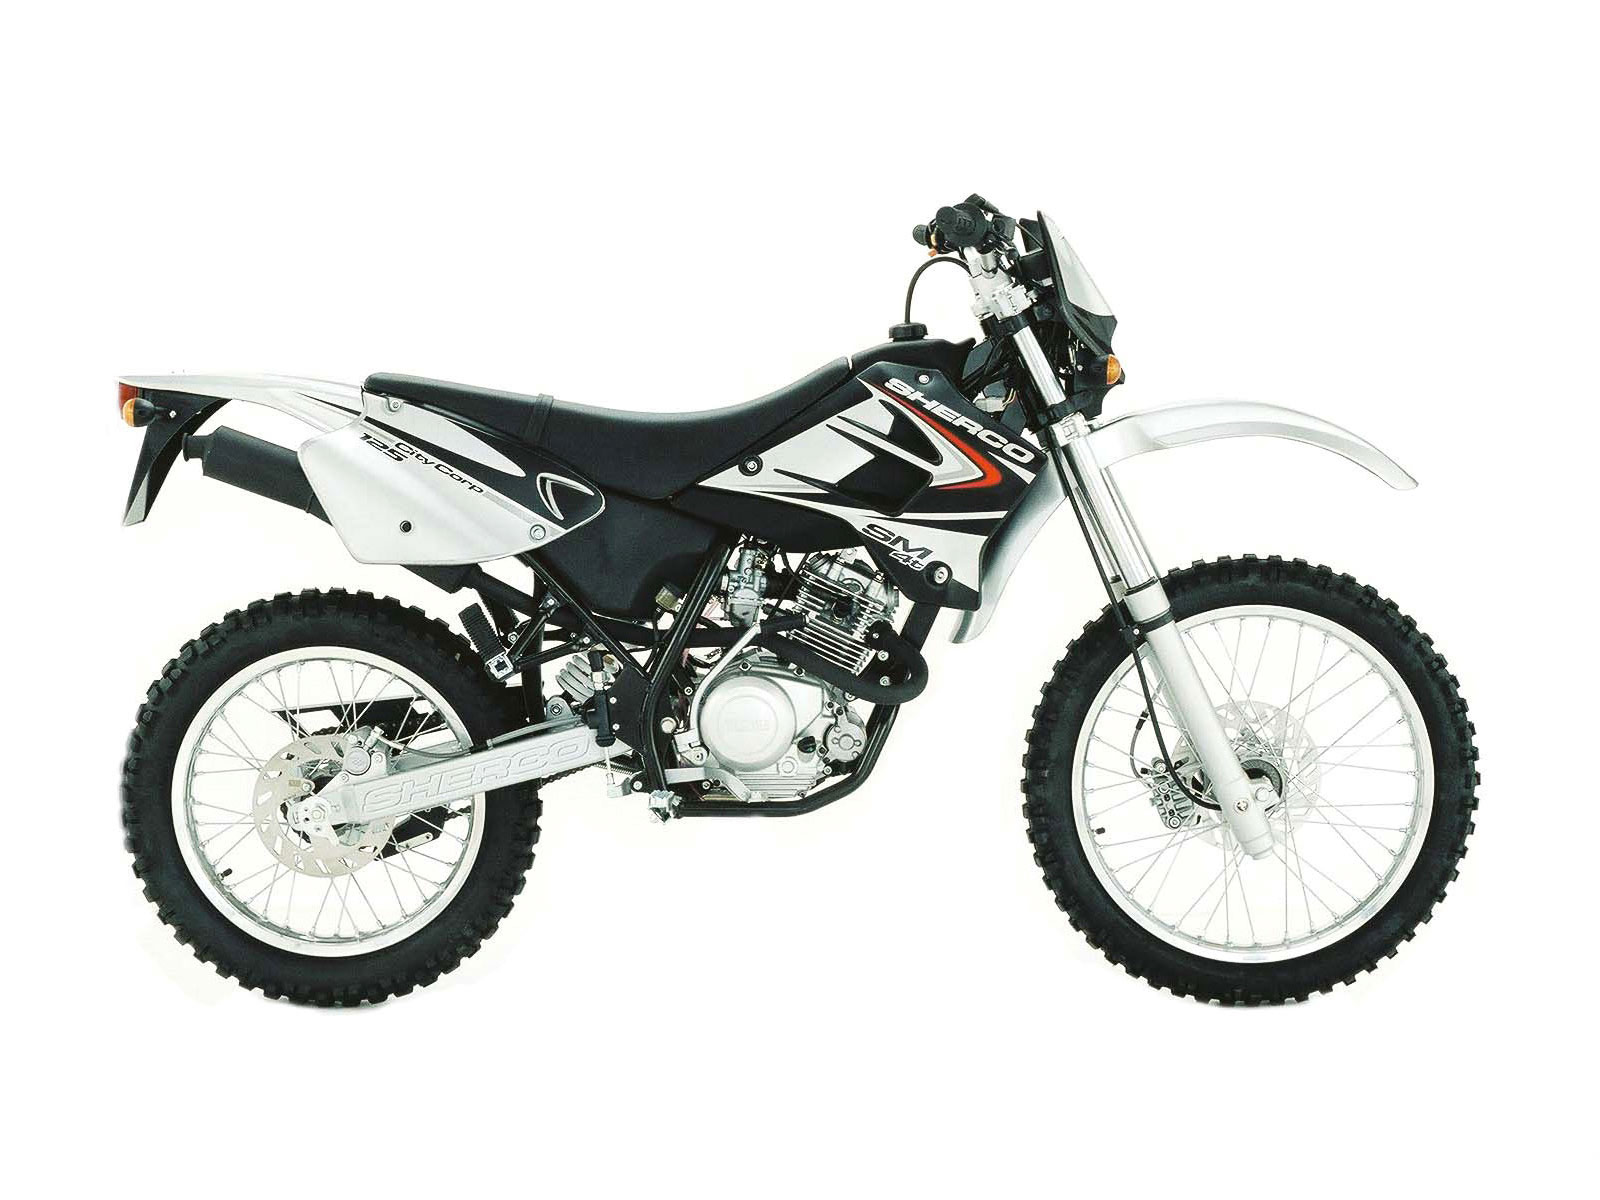 Highland 950 V2 Outback Supermoto 2005 images #97065